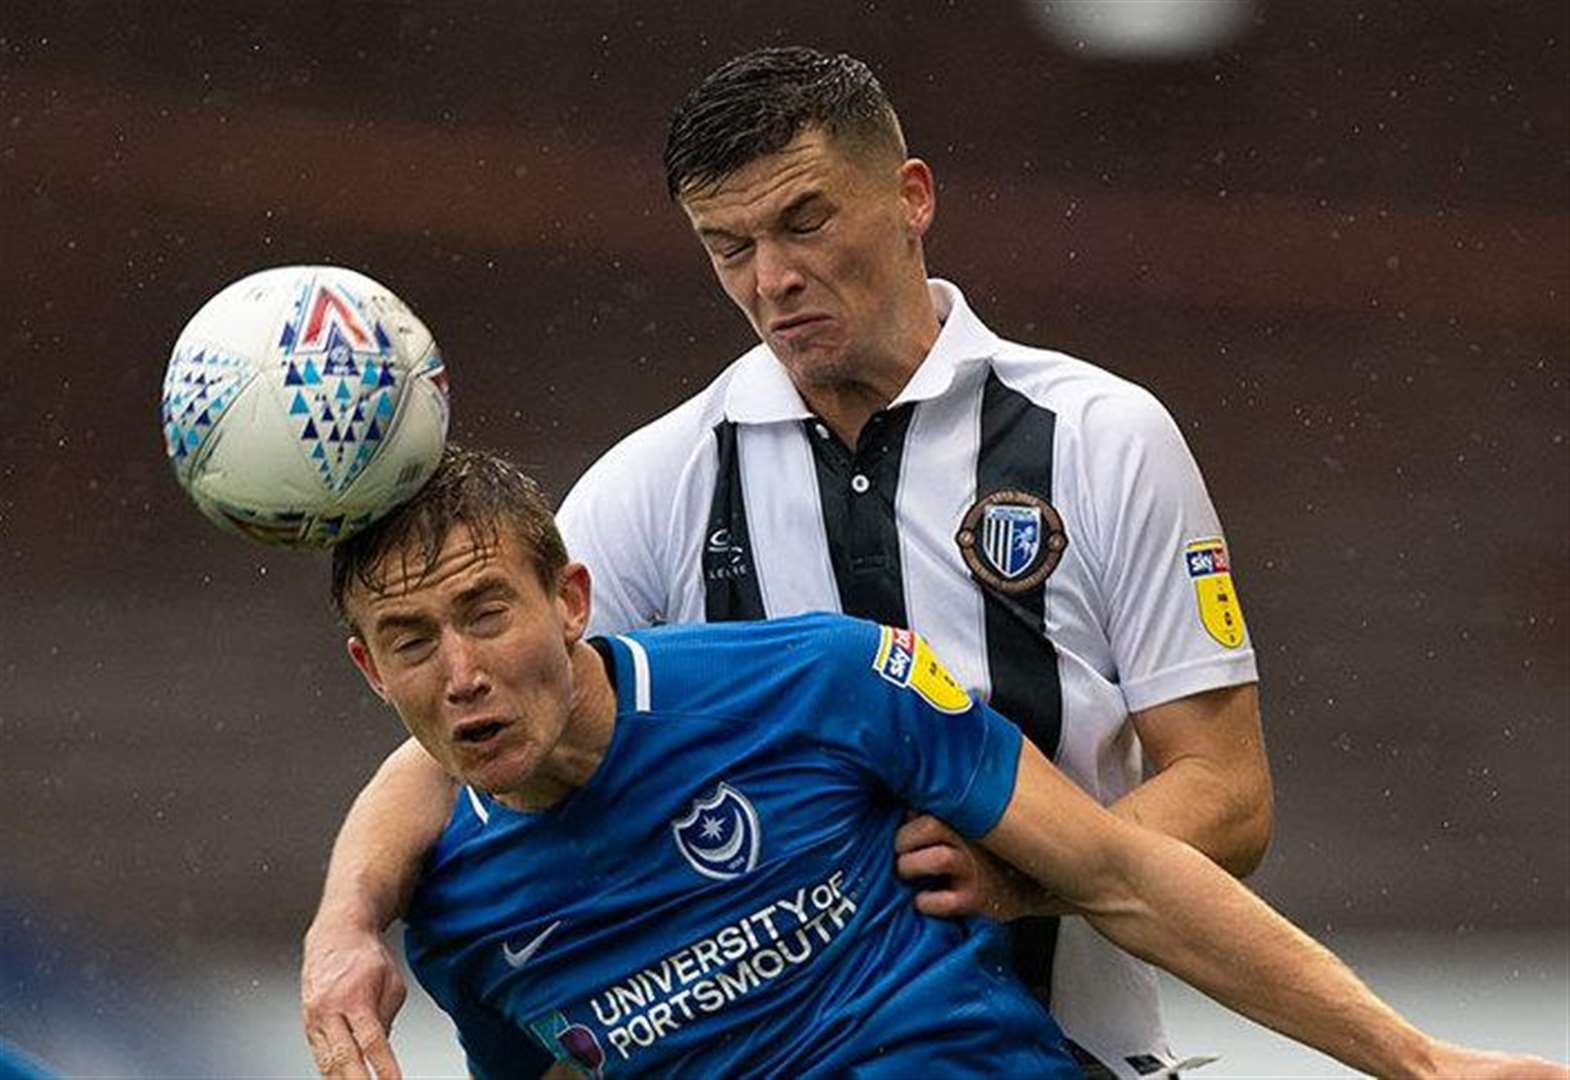 Report: Gills stun leaders